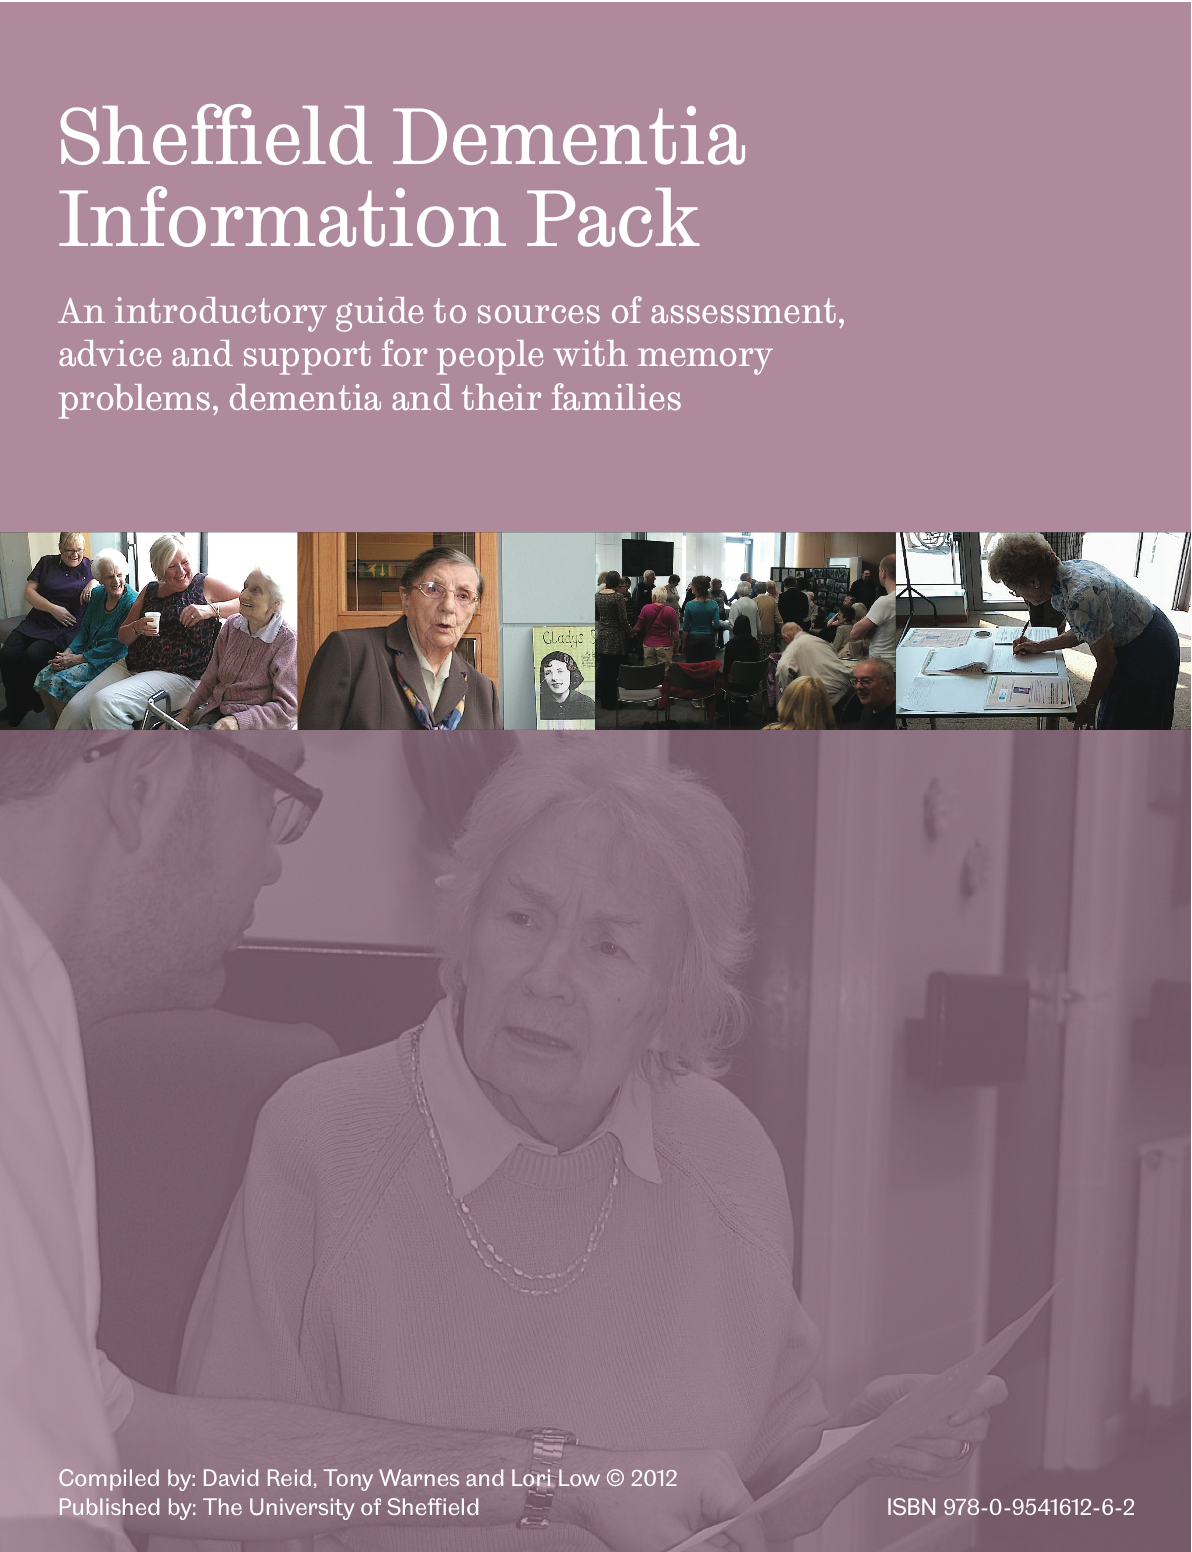 Sheffield dementia information pack